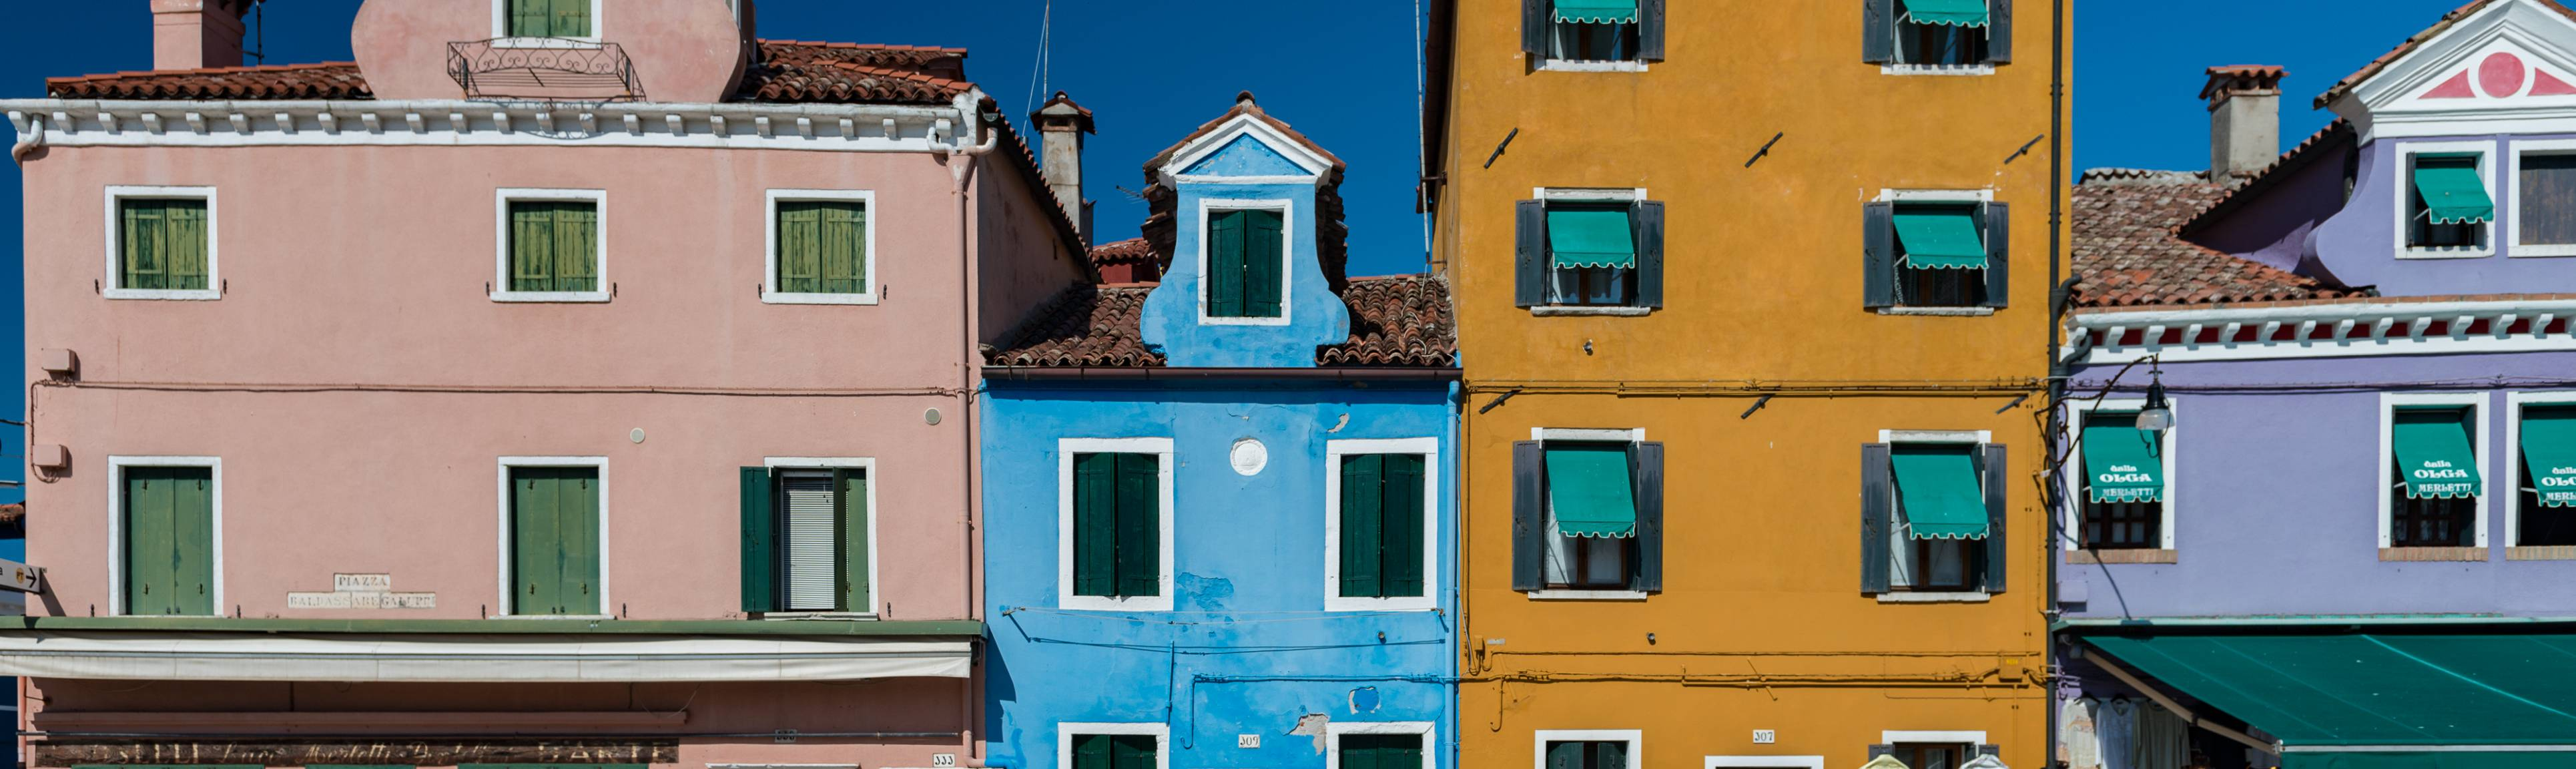 View of colorful buildings in a row on the island of Burano off Venice